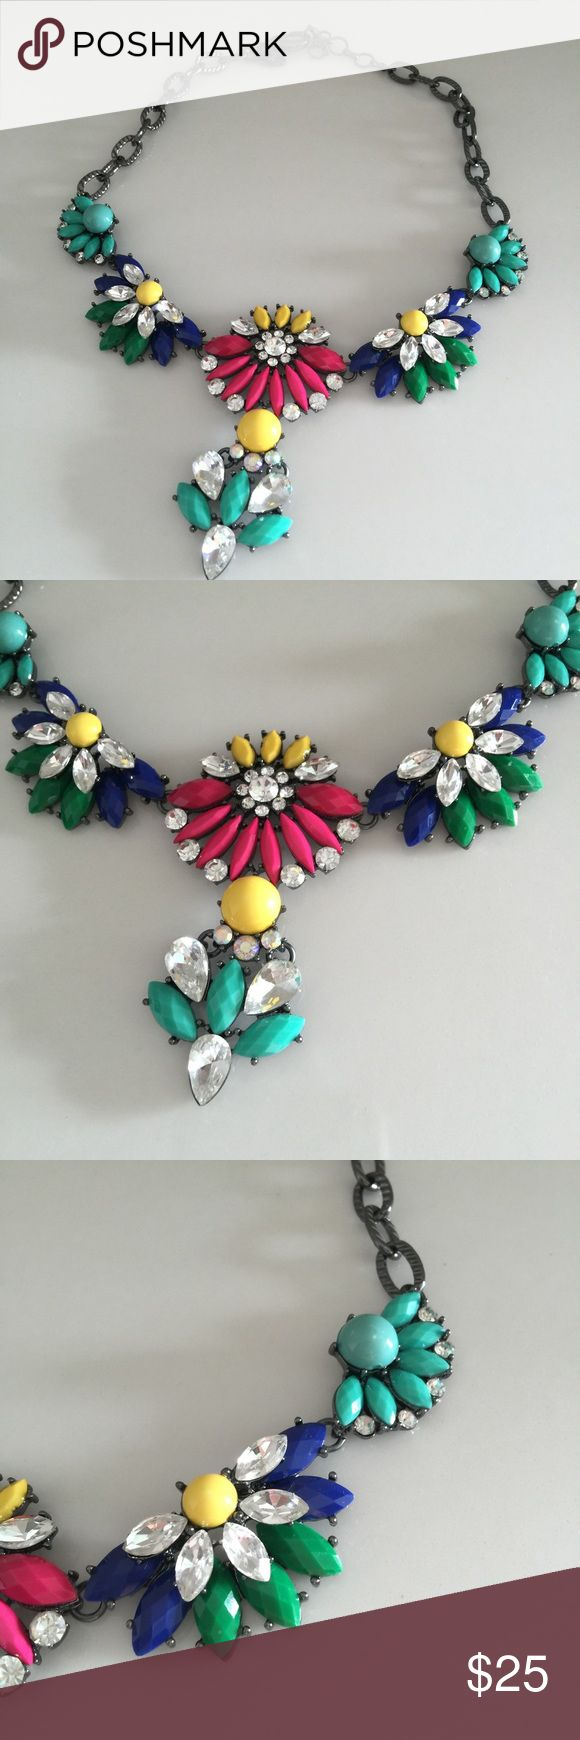 "Delightful Amrita Singh statement necklace Like new. Super lightweight. Adjustable 15""-19"" Amrita Singh Jewelry Necklaces"